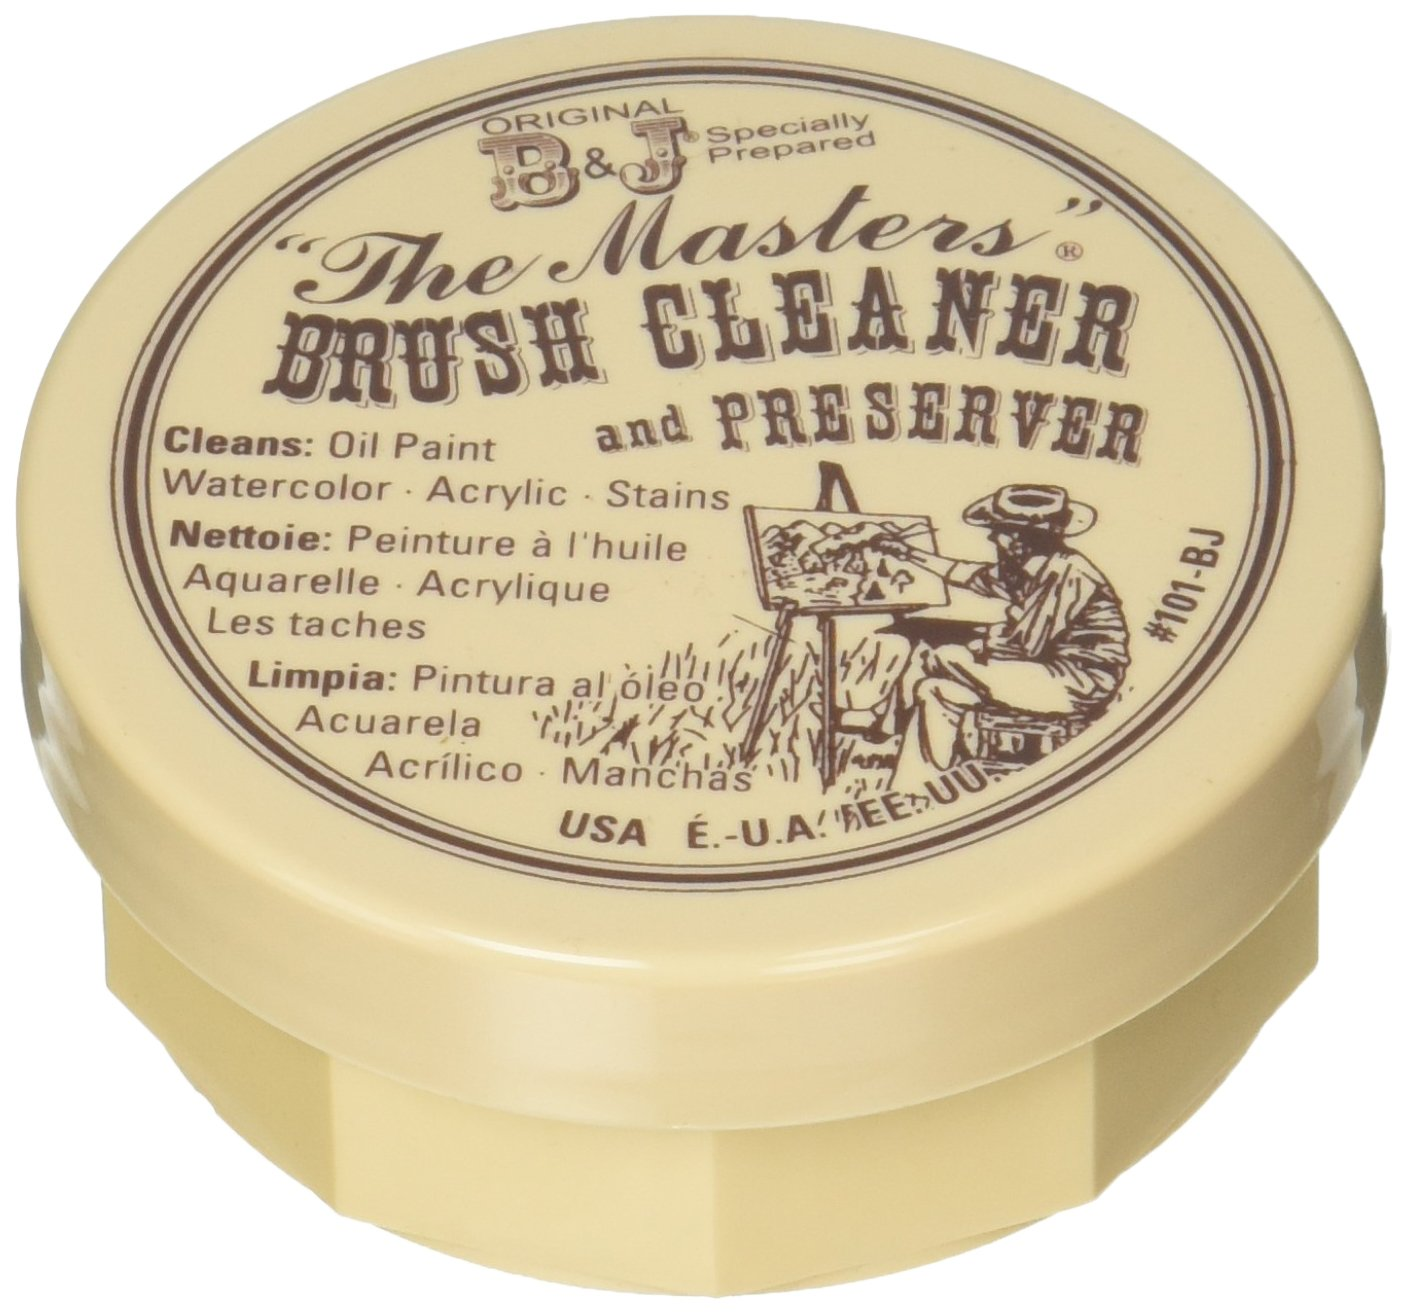 General Pencil 105-BP The Masters Brush Cleaner & Preserver 2.5 Ounces Carded-